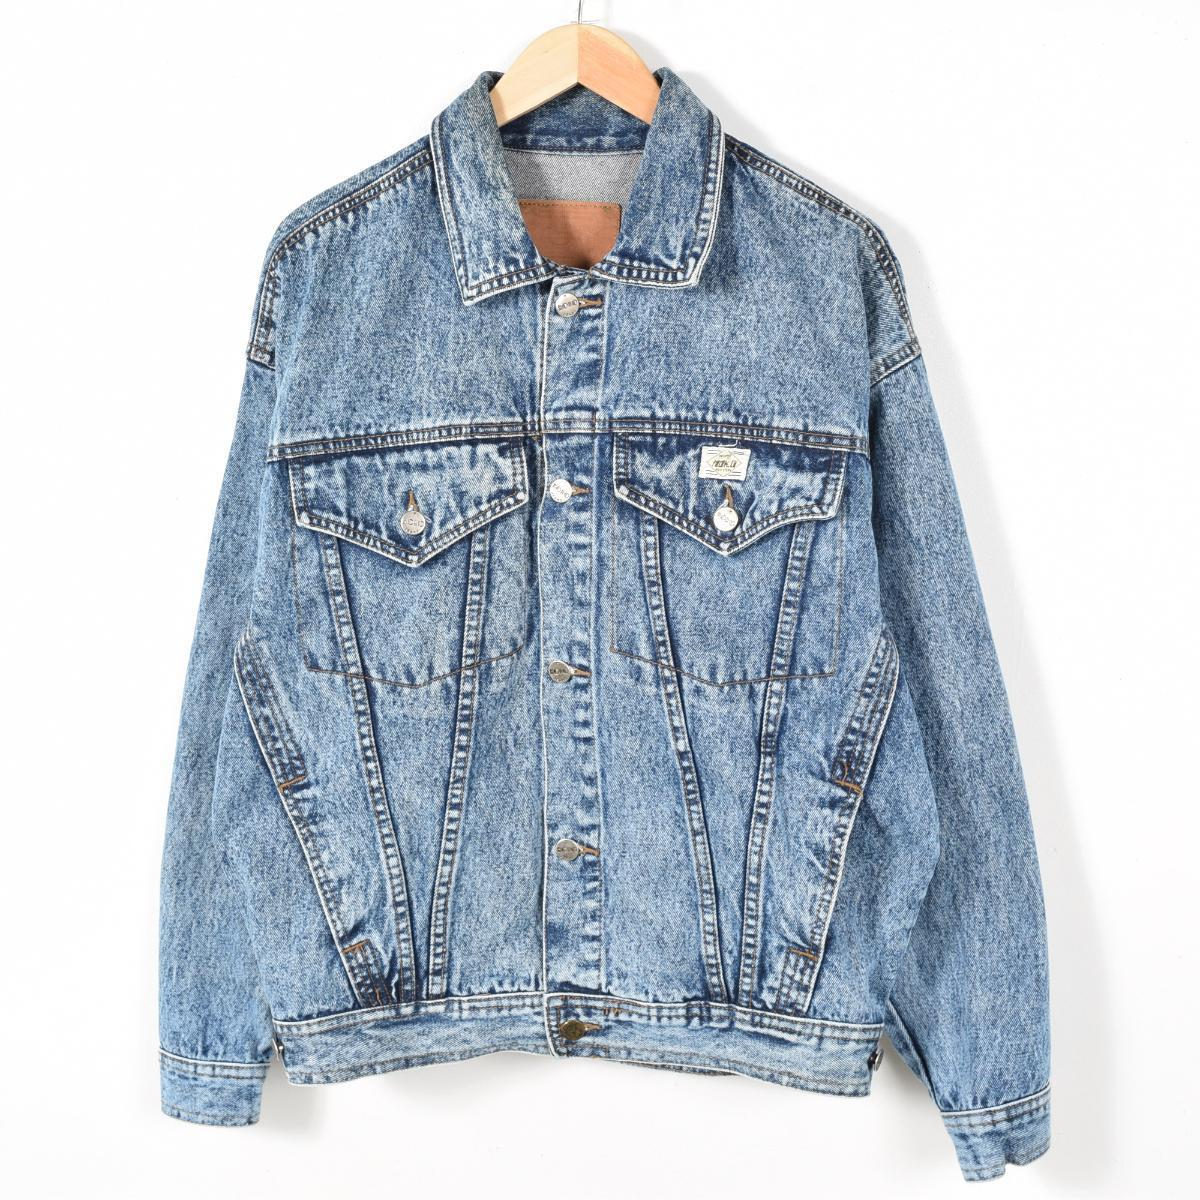 VINTAGE CLOTHING JAM TRADING | Rakuten Global Market: Denim jacket ...